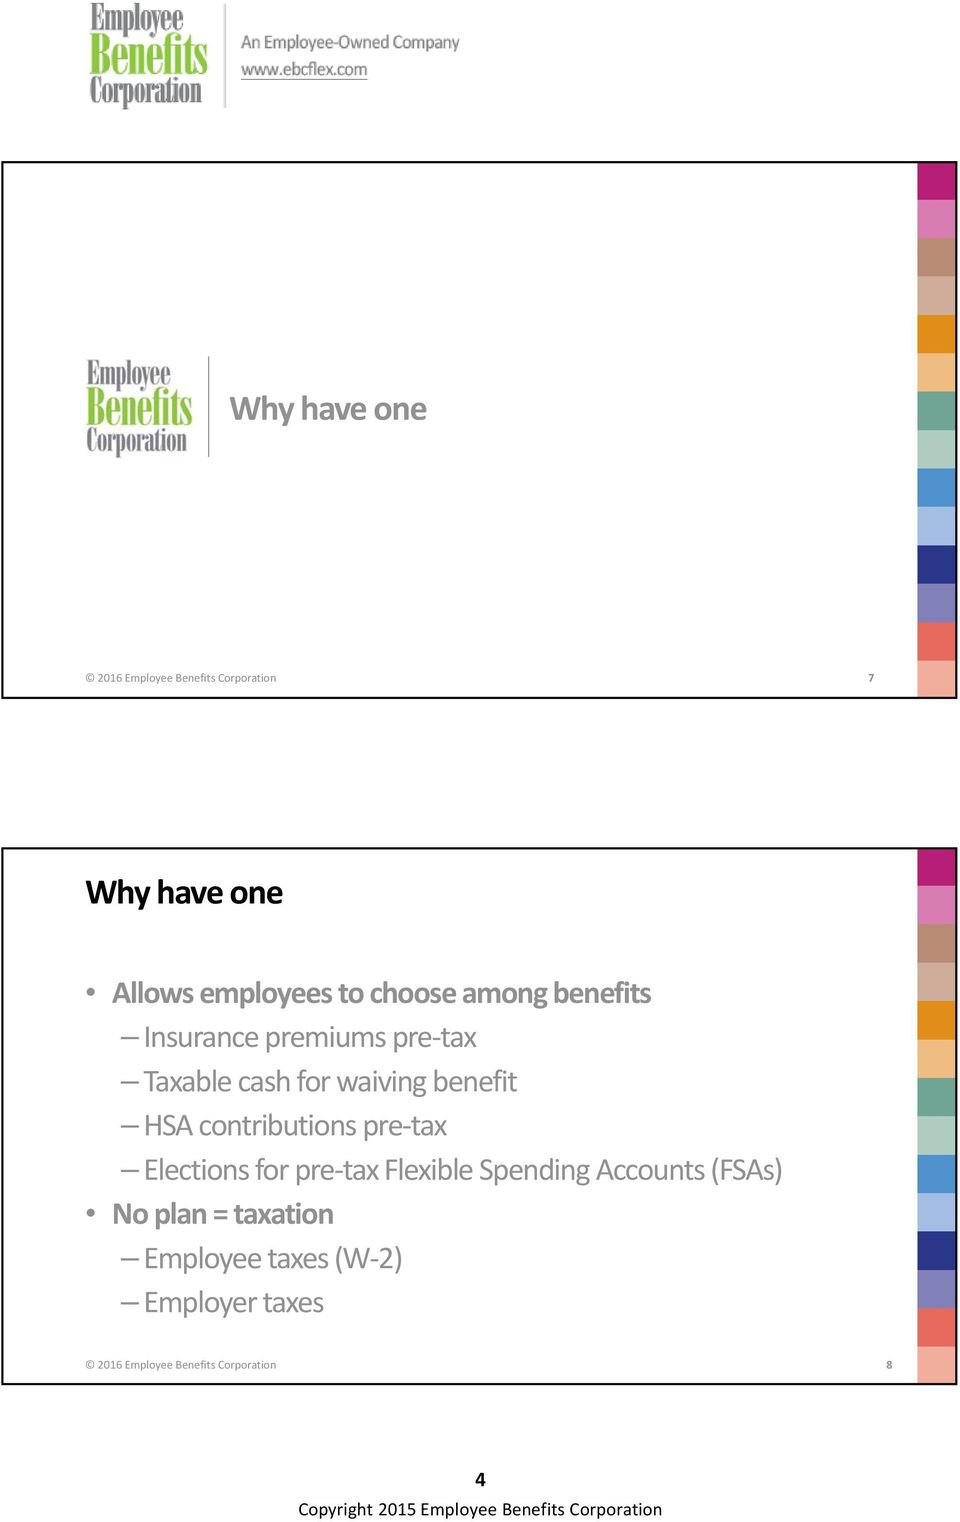 HSA contributions pre tax Elections for pre tax Flexible Spending Accounts (FSAs) No